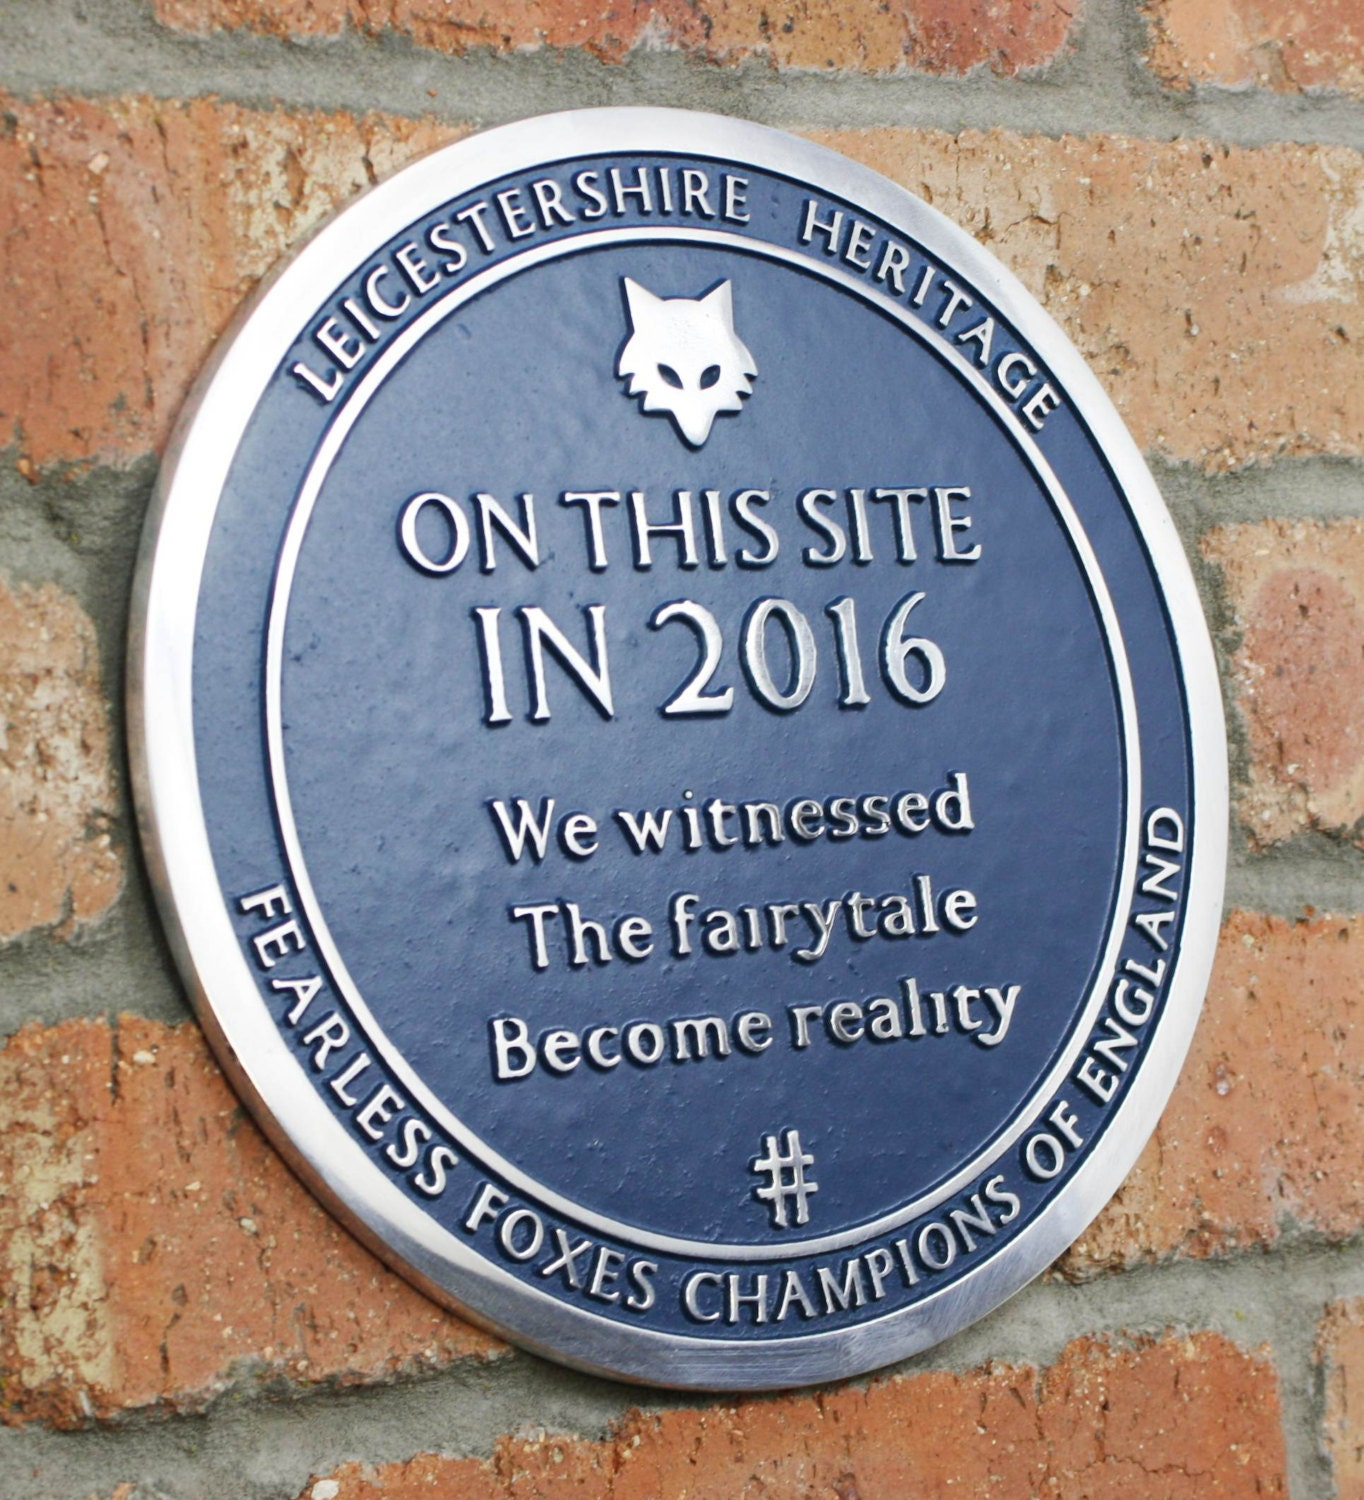 Image result for 2016 witnesses fairytale reality leicester blue plaque